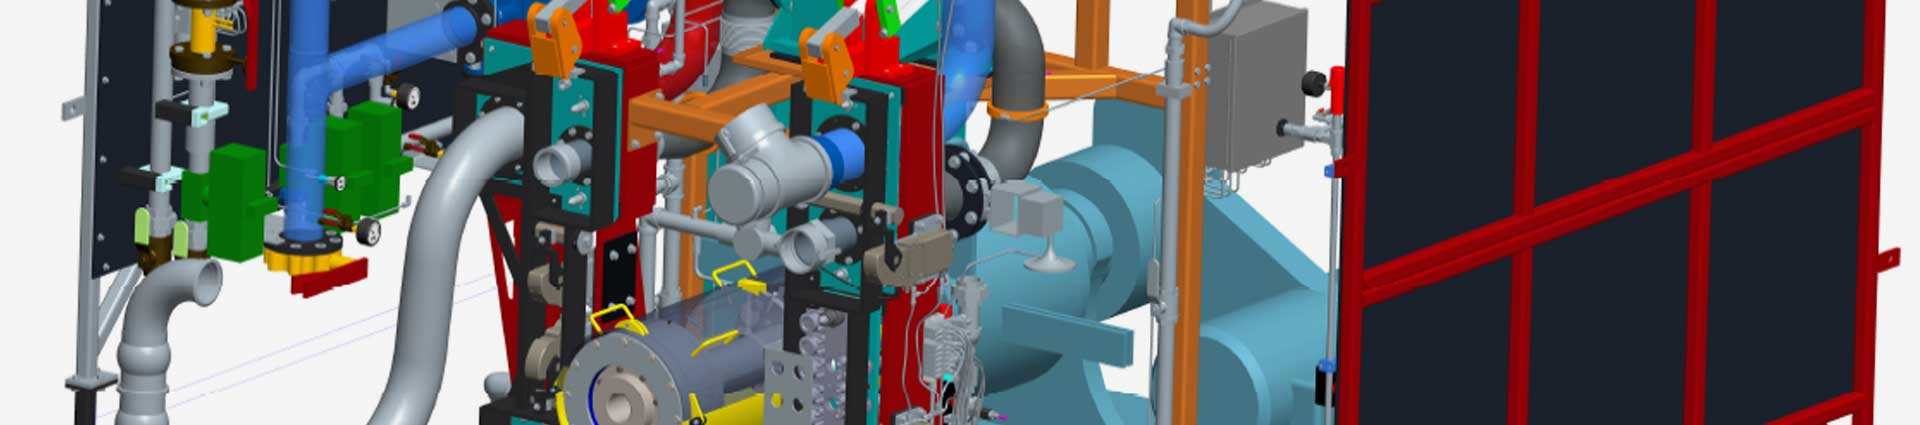 acs industrial equipment engineering, acs industrial equipment design